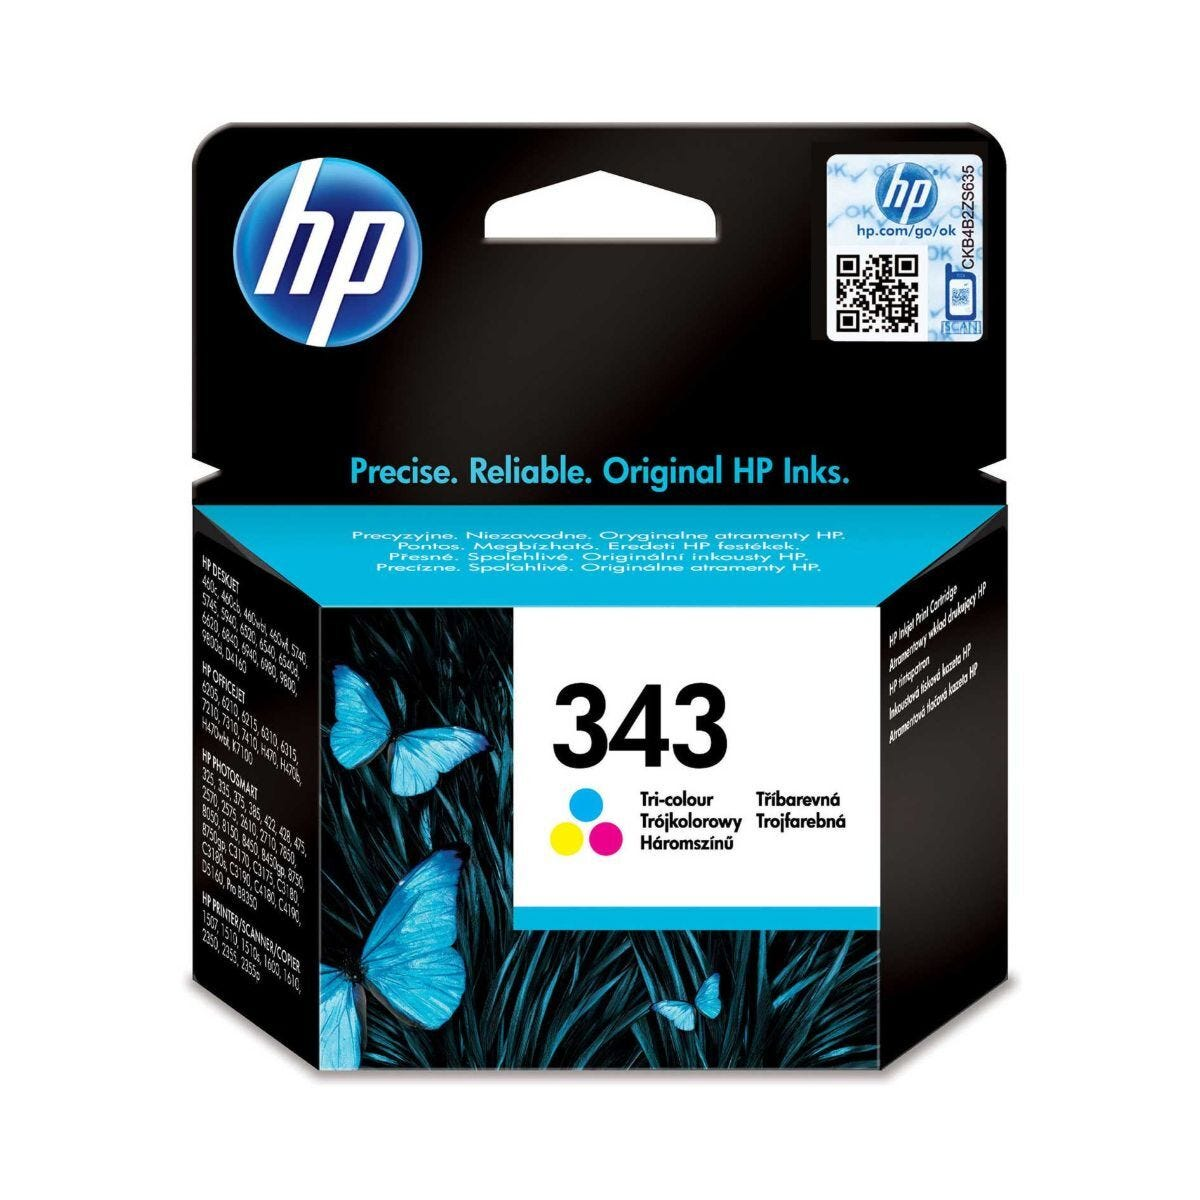 HP 343 Ink Cartridge 7ml